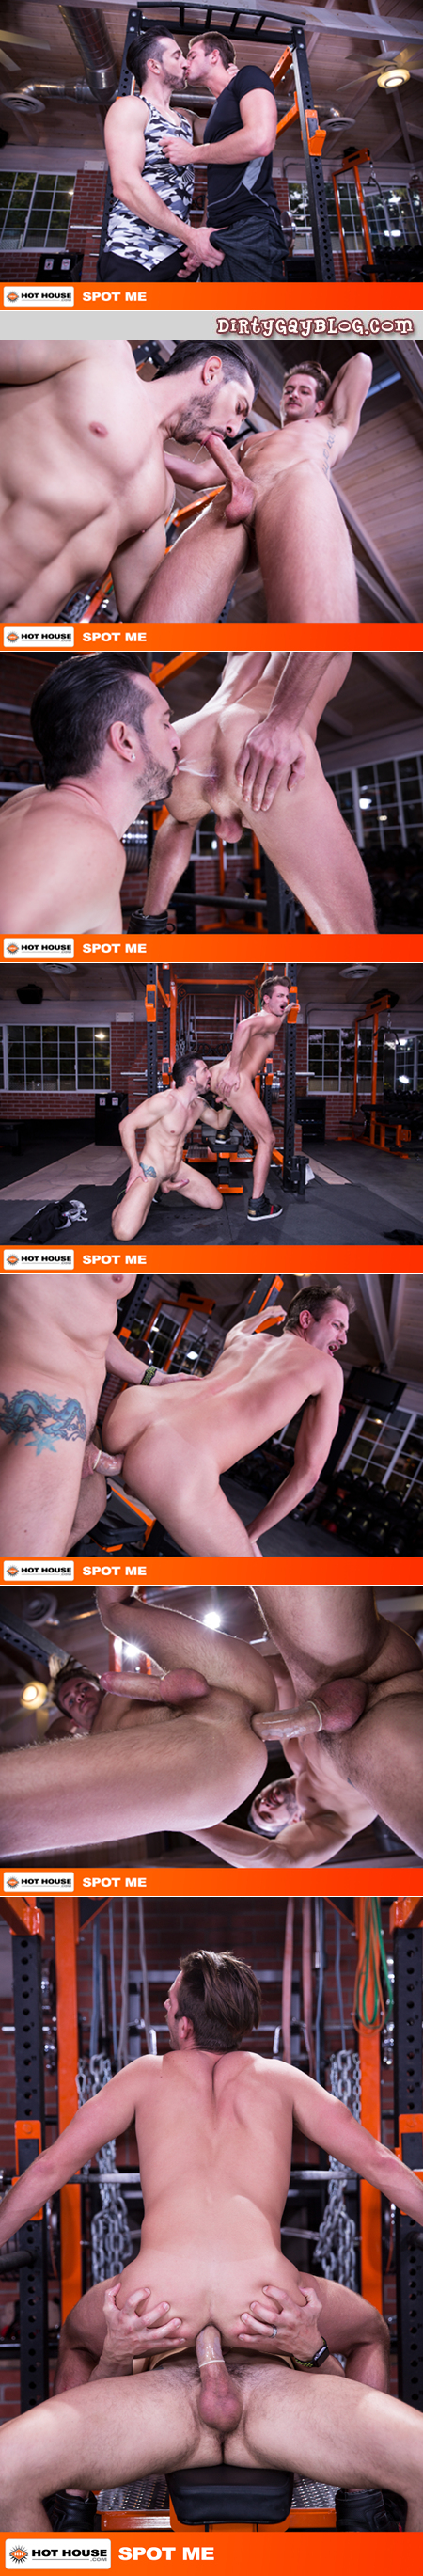 Muscular trainer fucking his male client on the gym equipment.